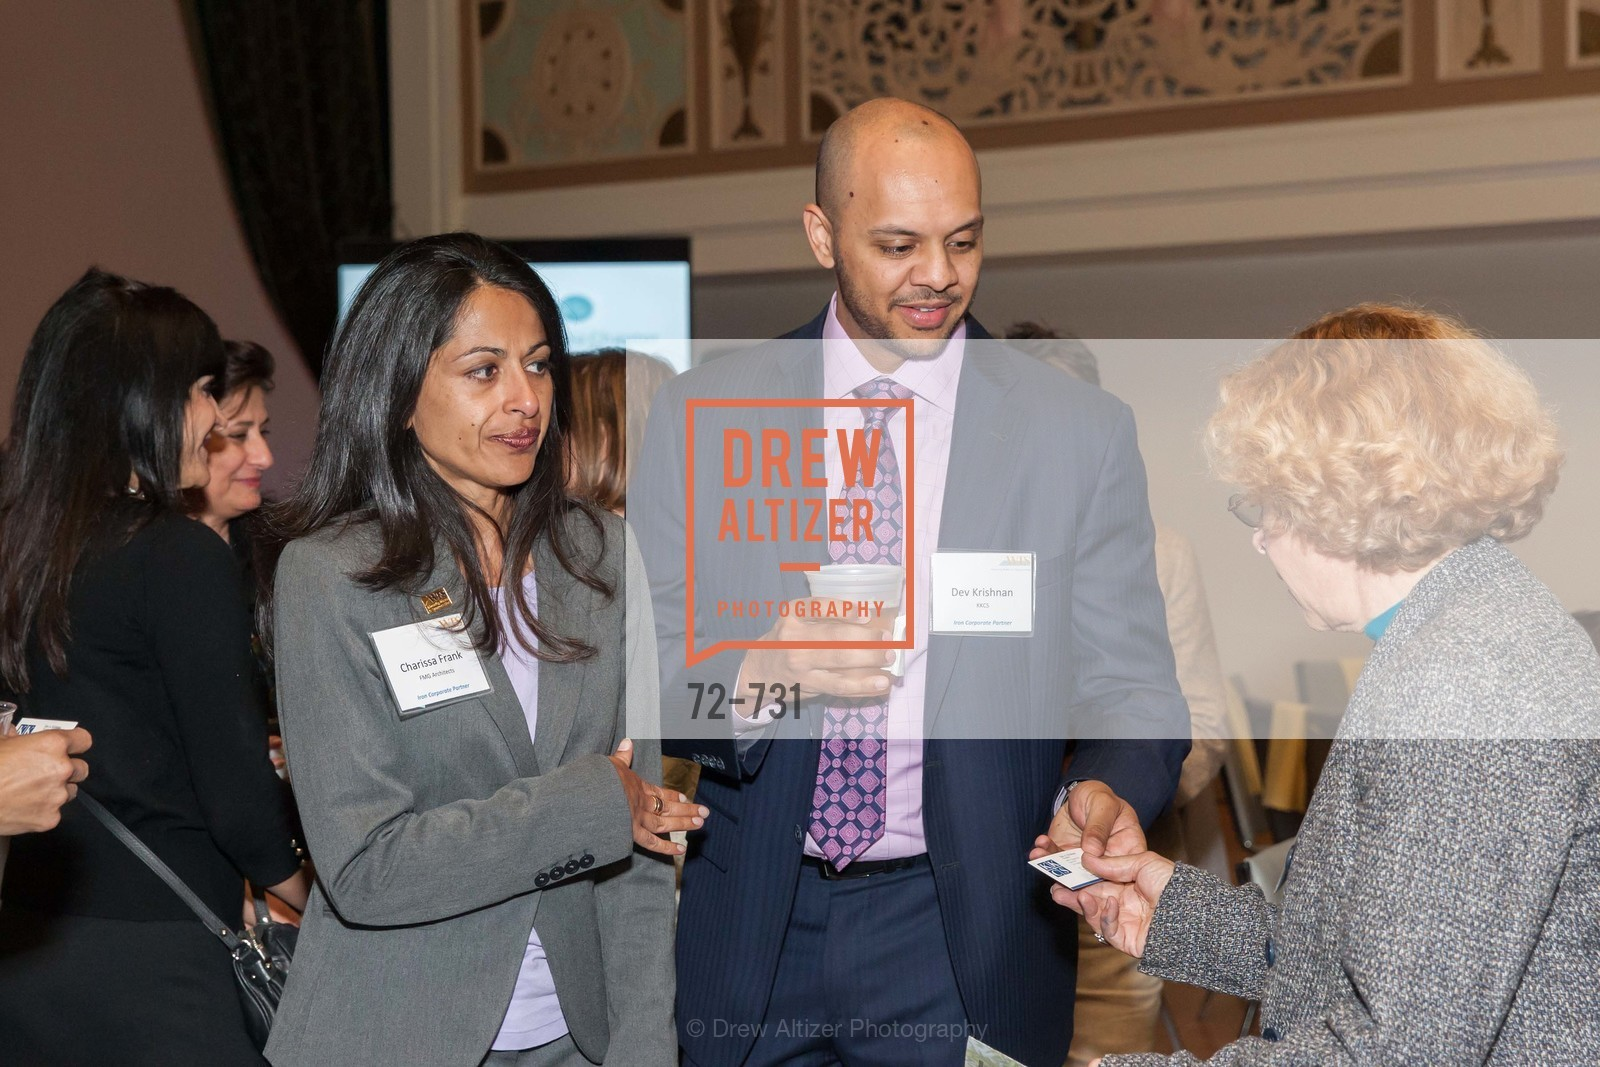 Charissa Frank, Dev Krishnan, WOMEN'S TRANSPORTATION SEMINAR SF Bay Area Chapter Annual Scholarship Awards, US, May 15th, 2015,Drew Altizer, Drew Altizer Photography, full-service agency, private events, San Francisco photographer, photographer california